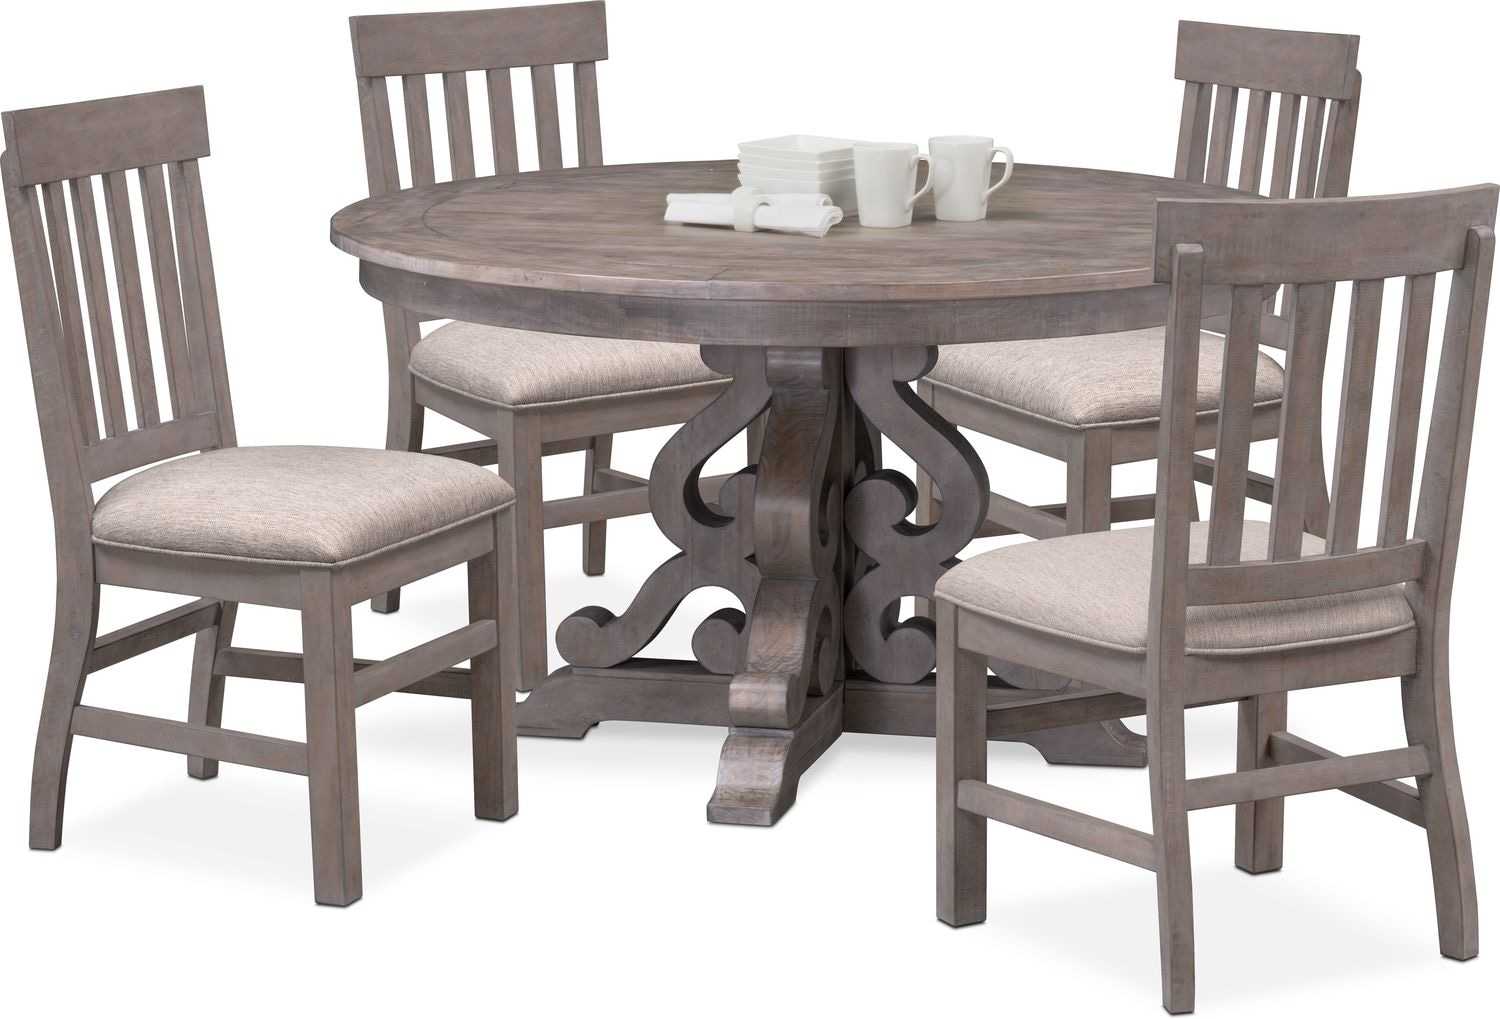 Round Dining Table And Chairs Charthouse Round Dining Table And 4 Side Chairs Gray